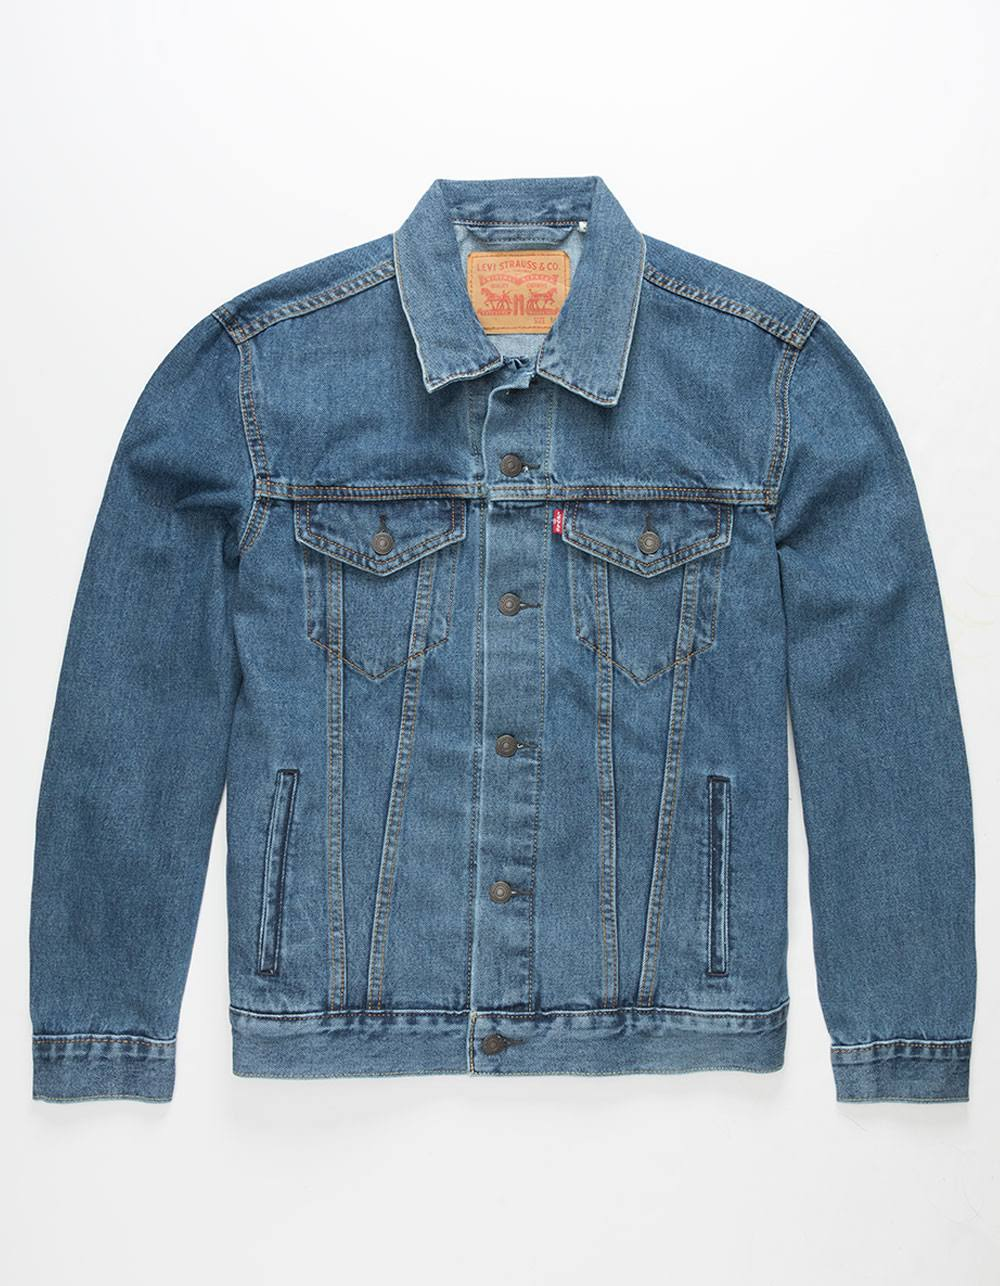 Men's Levi's The Trucker Trucker Jacket Jacket Levi's The Levi's Men's The Trucker Men's Iq1SUS